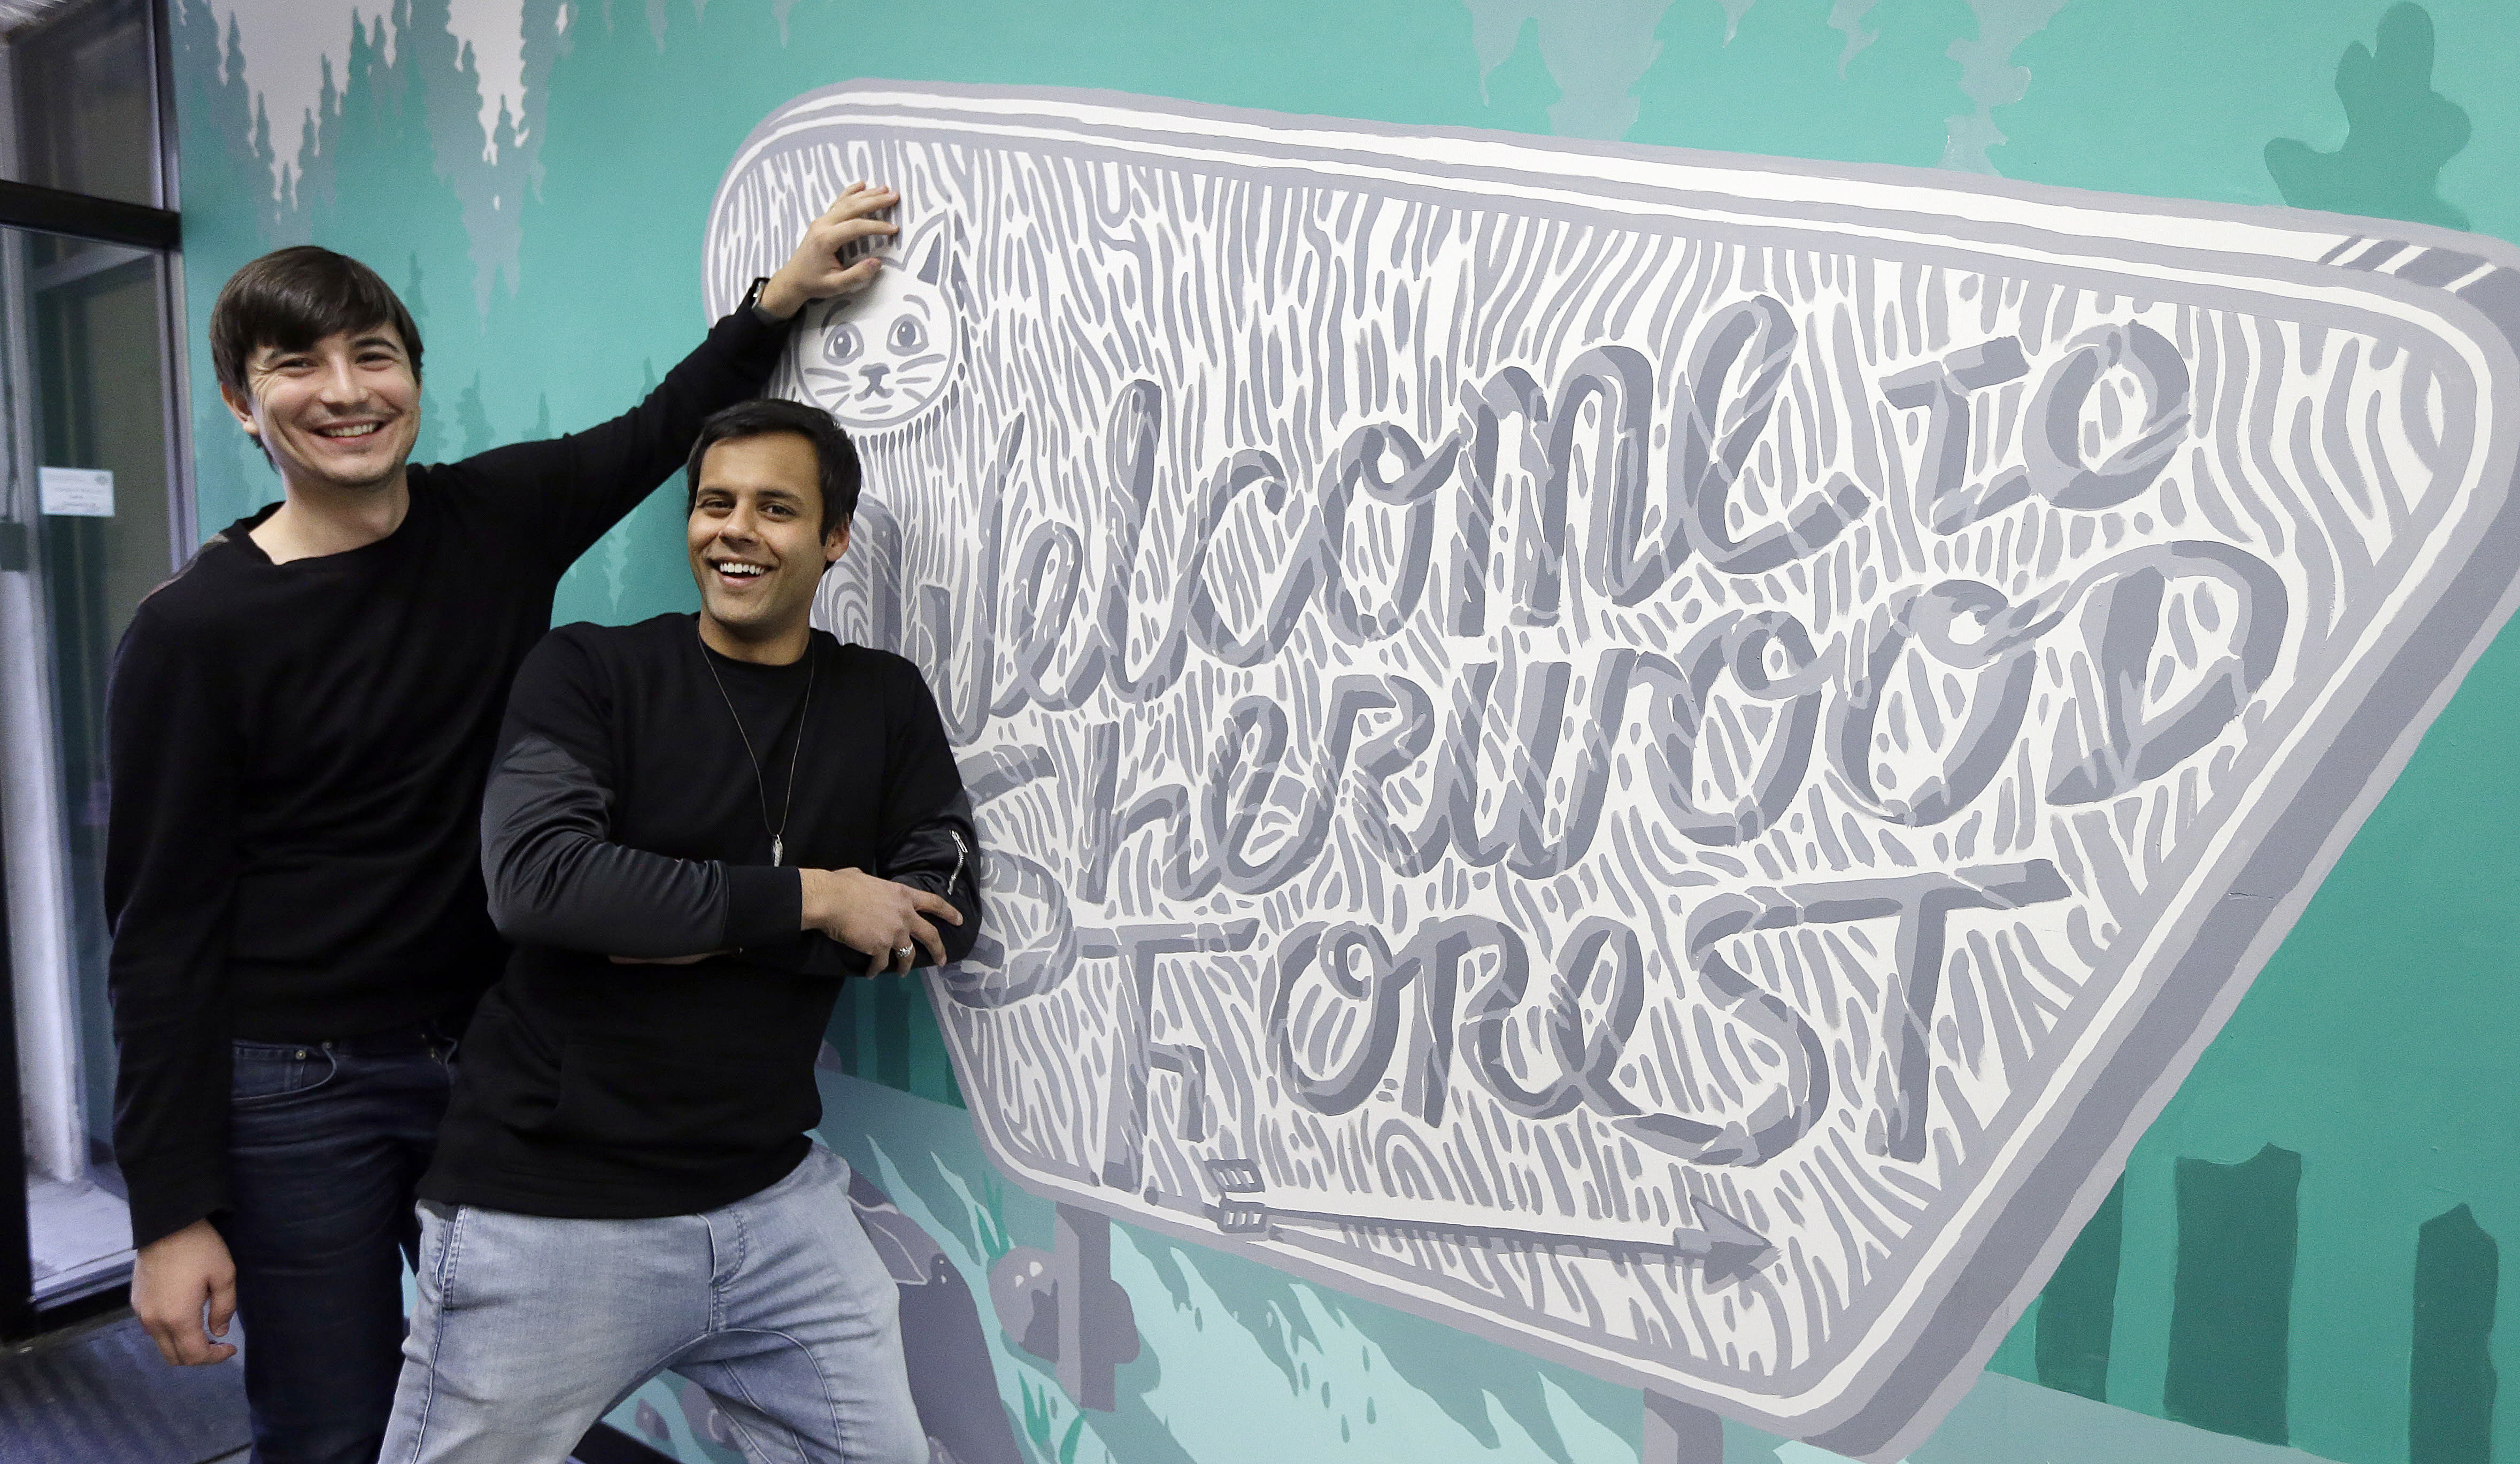 Banking on change: Tech startups target financial services